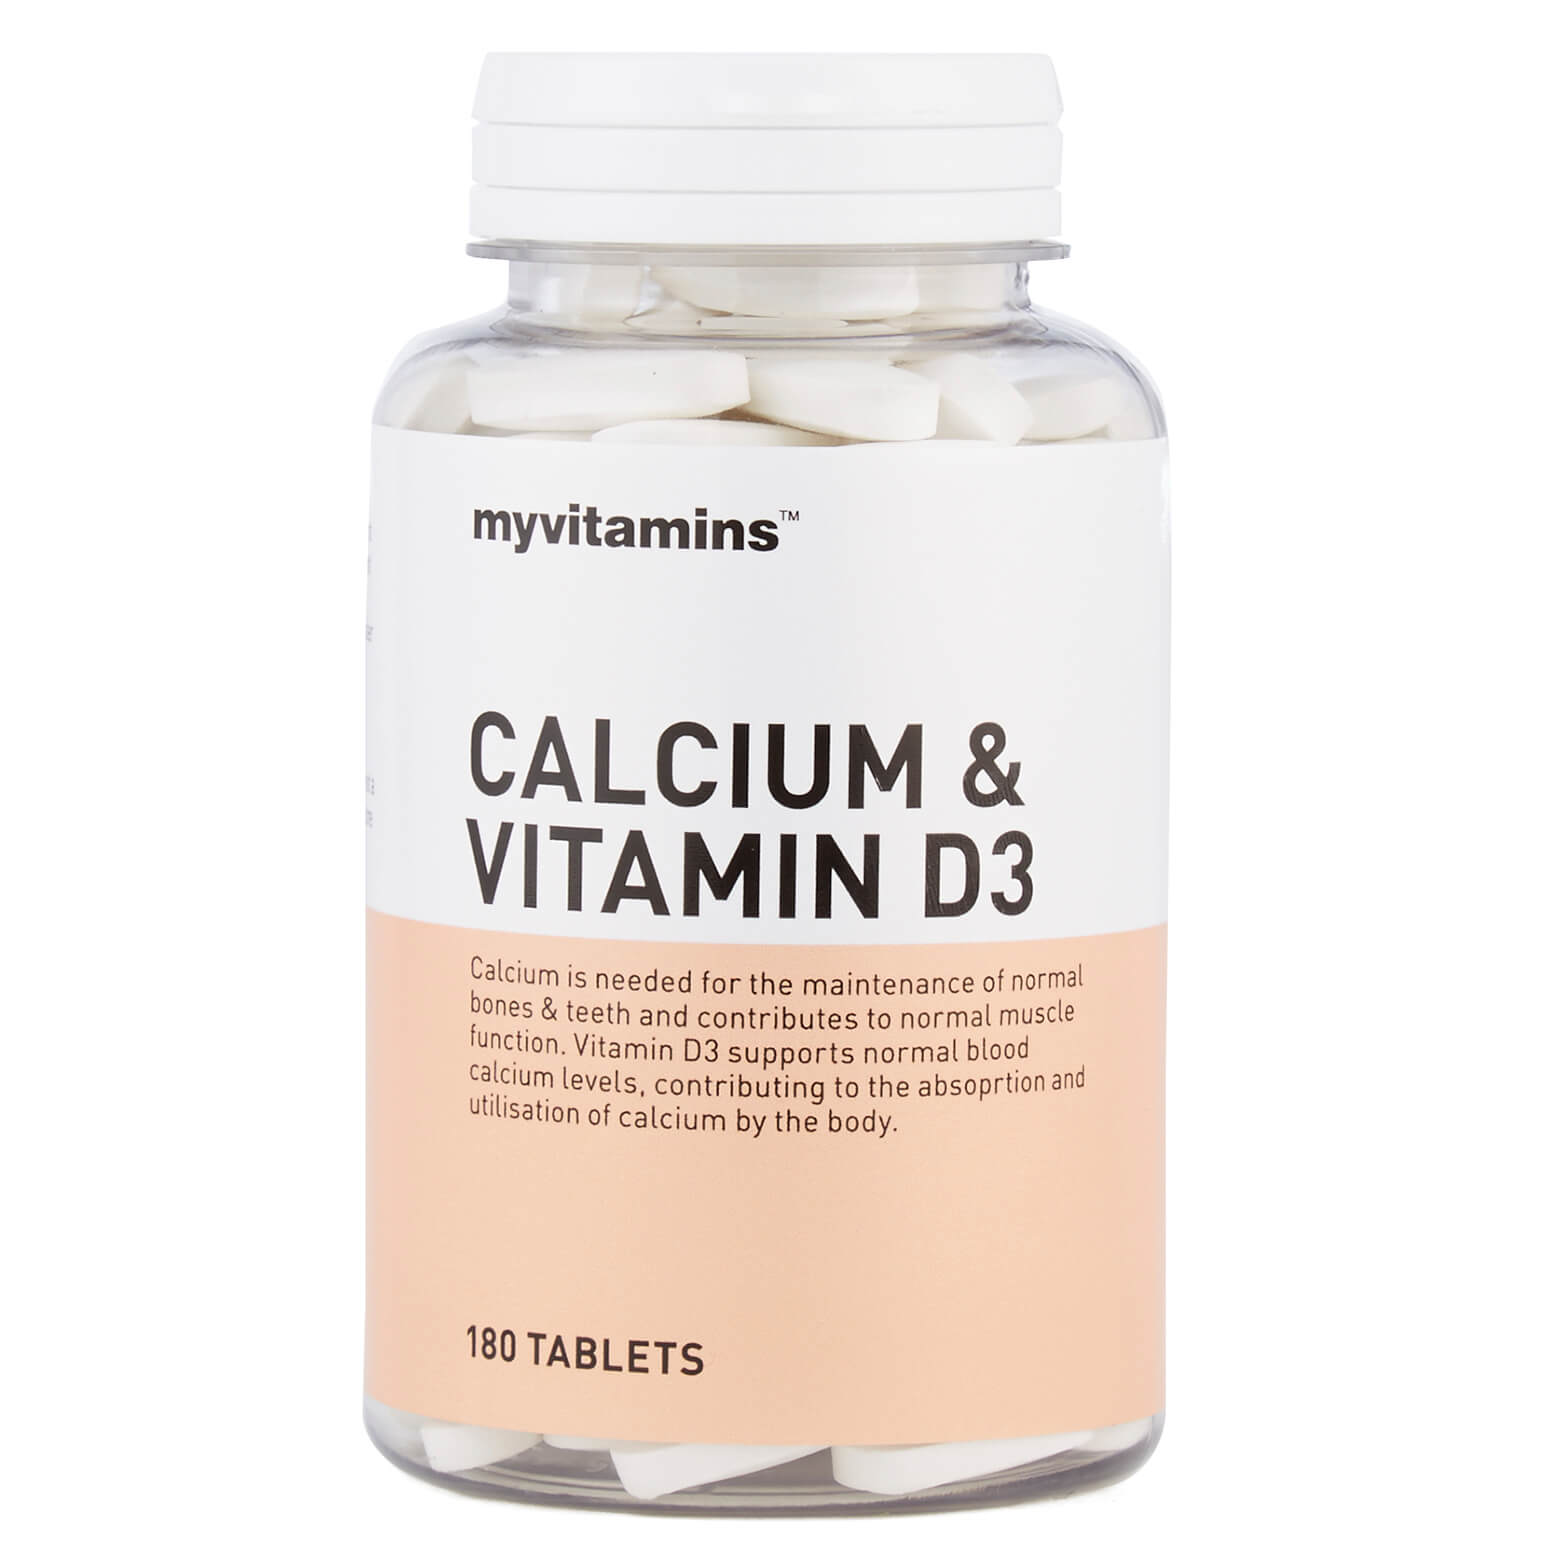 Myvitamins Calcium & Vitamin D3, 60 Tablets